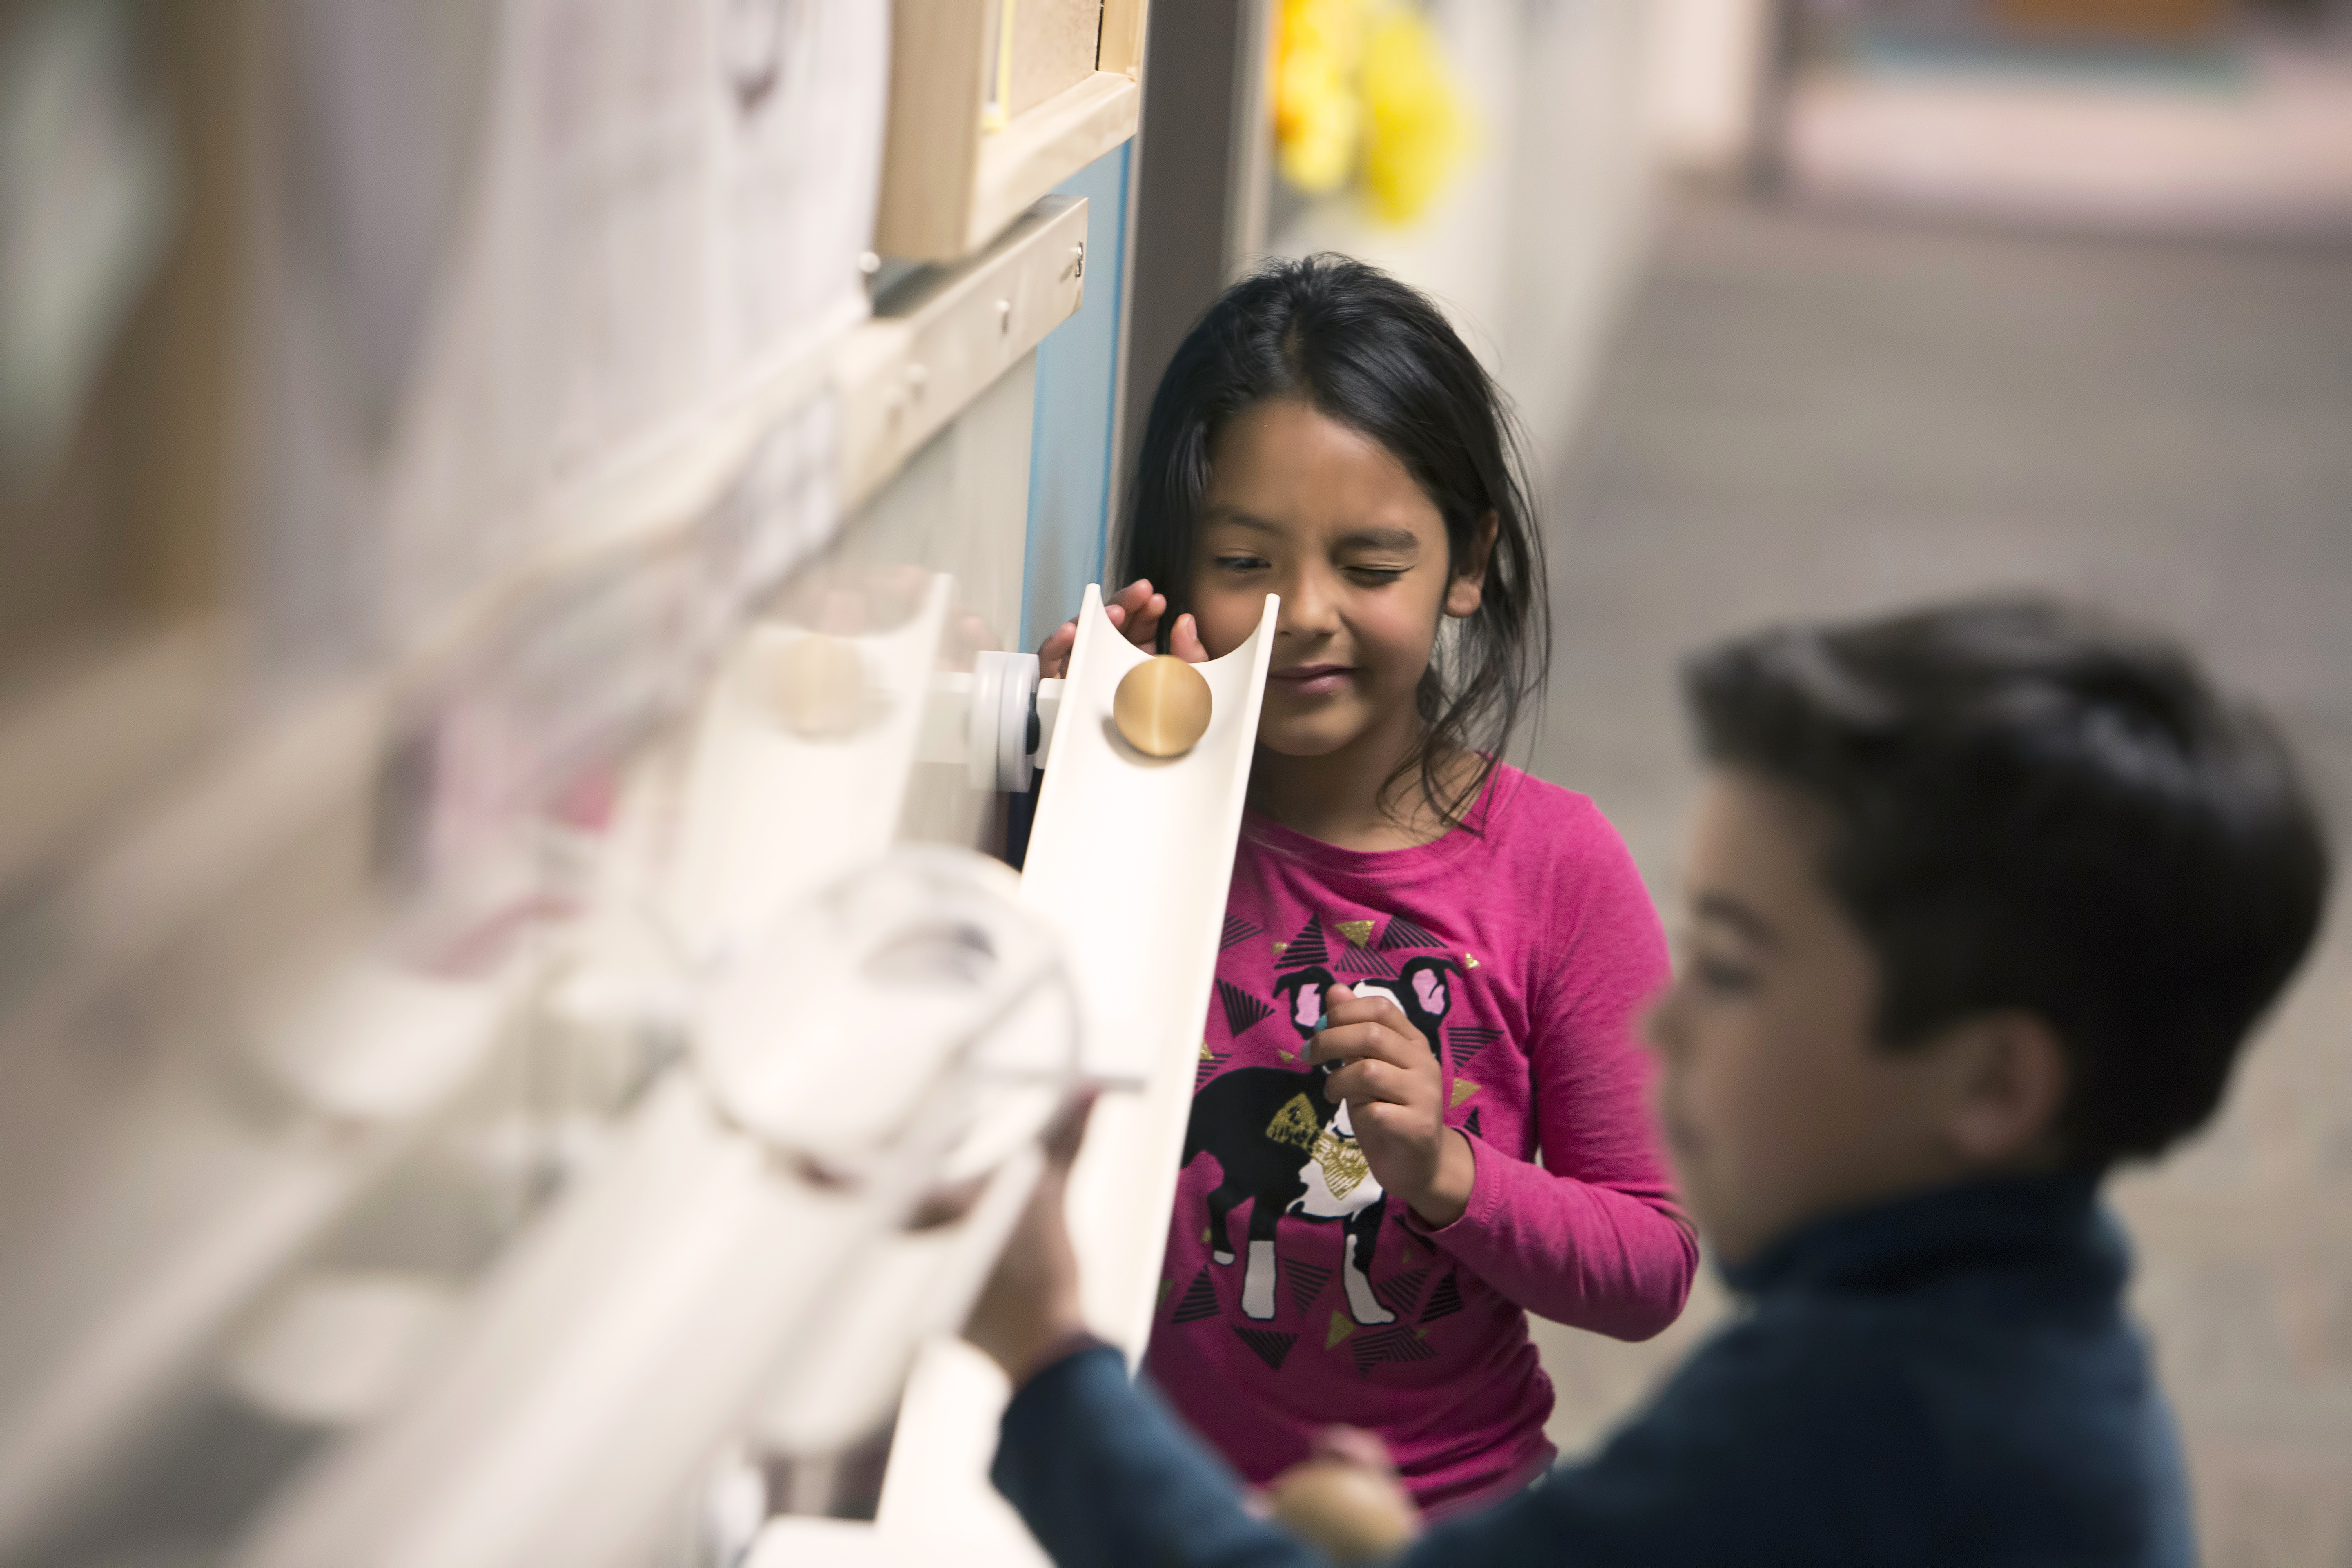 pread throughout St. Vrain Valley Schools after being introduced in a high school STEM academy. The Colorado district will open a new elementary school focused on the approach in the 2018-19 school year.